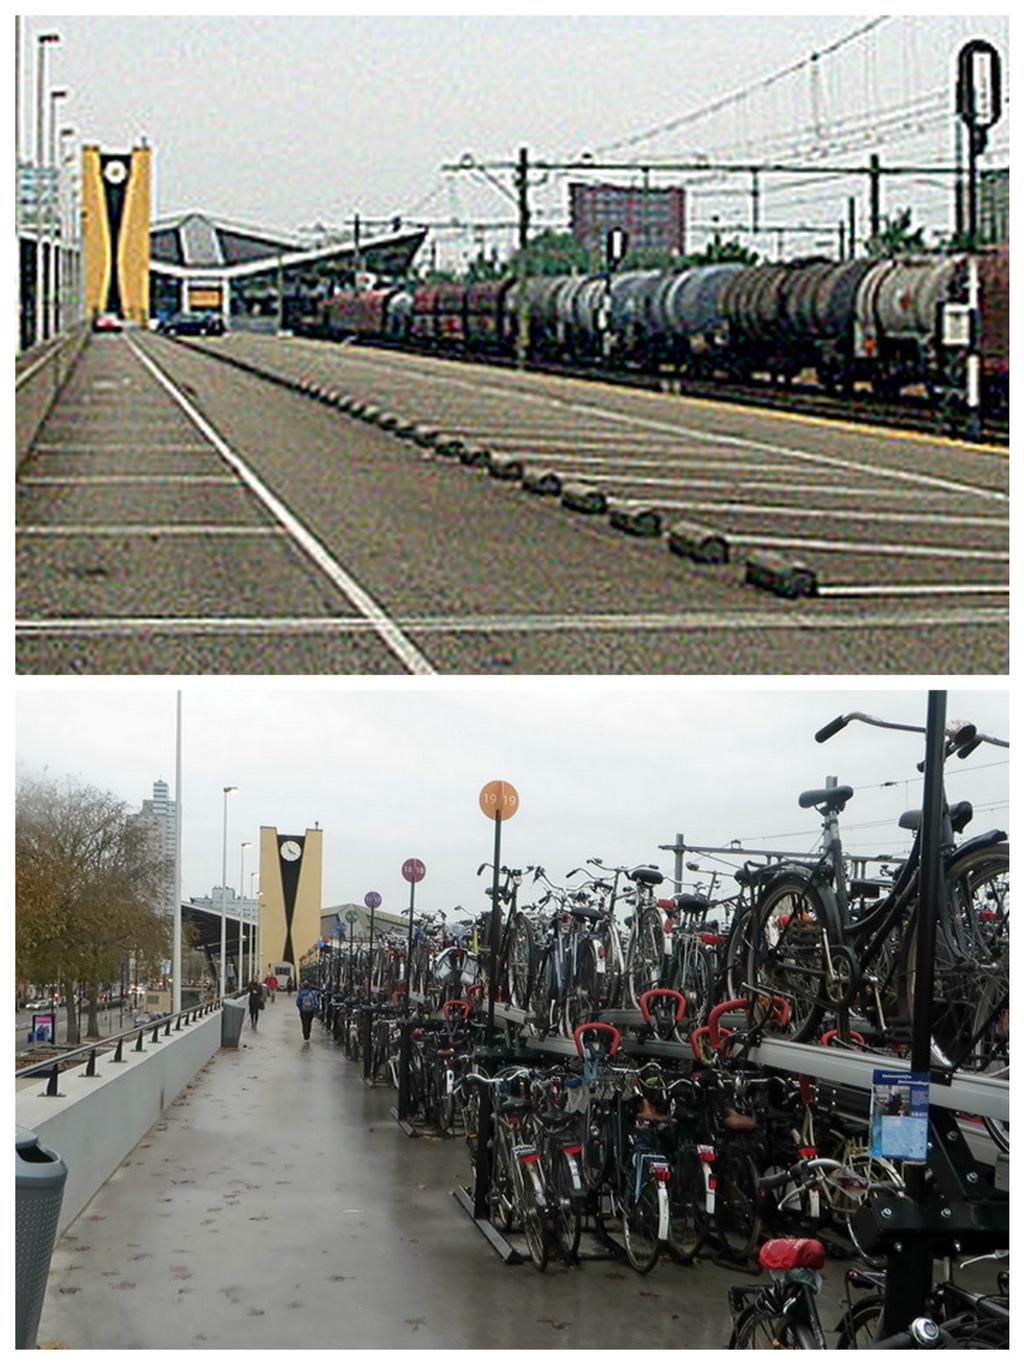 A disused postal platform at the central station in Tilburg, NL was recently converted into bike parking. Click image for link to full story and visit the slowottawa.ca boards >> >> https://www.pinterest.com/slowottawa/